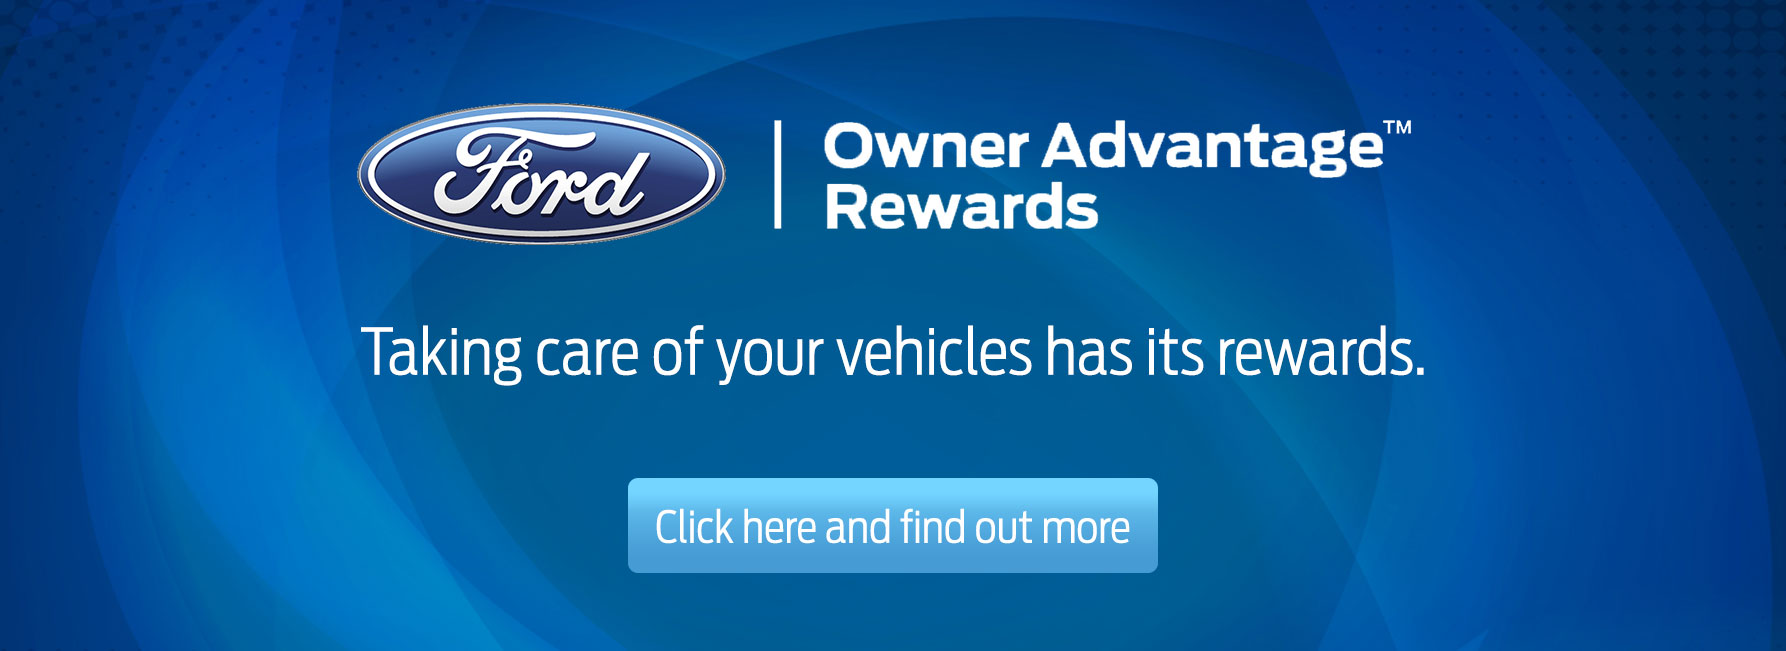 Metro Ford Owner Advantage Rewards